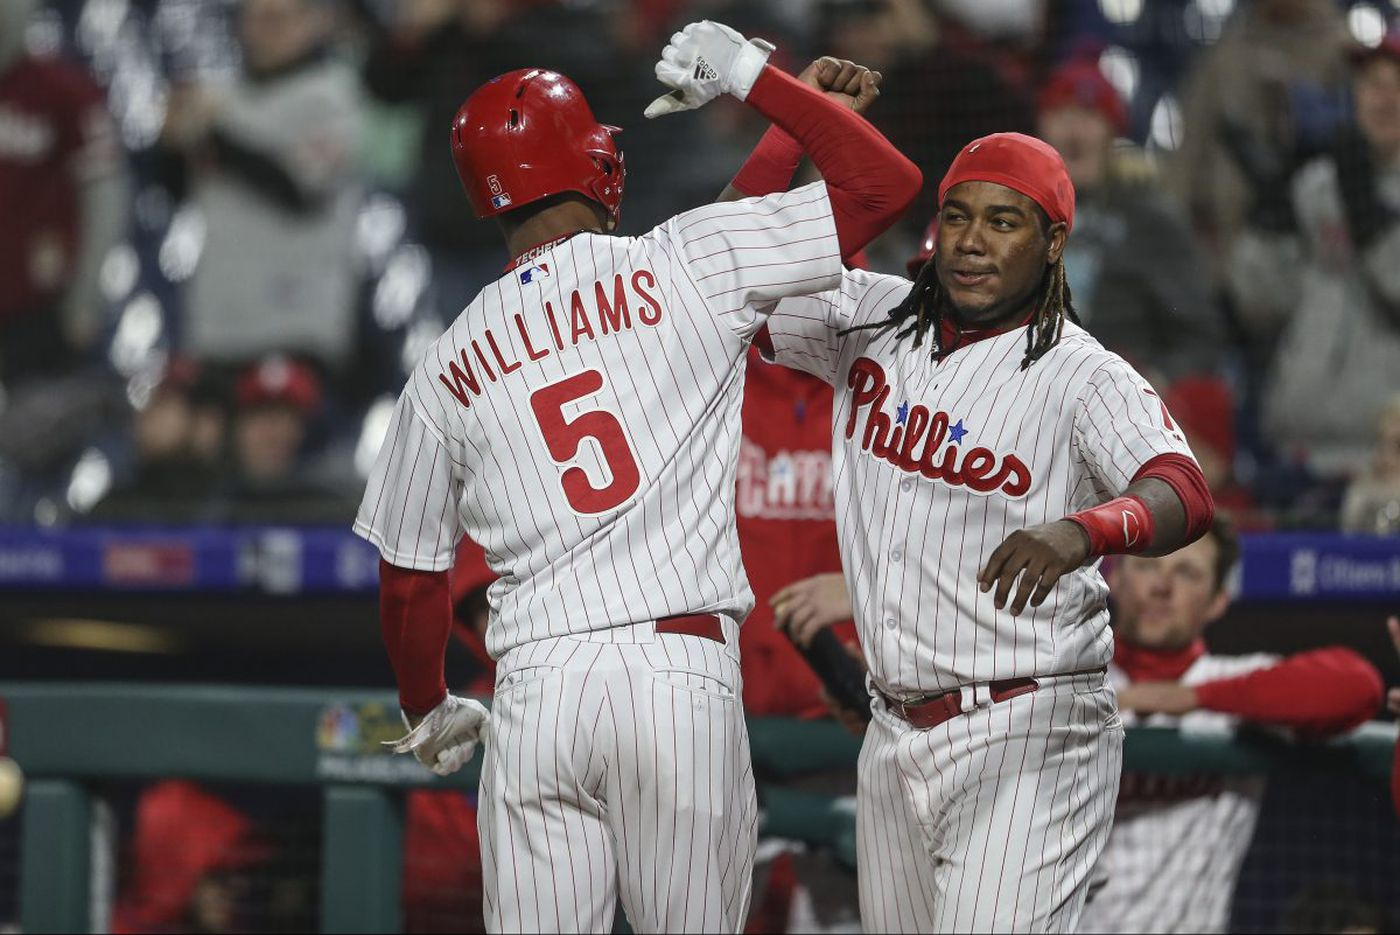 Nick Williams homers to lift Phillies over Reds